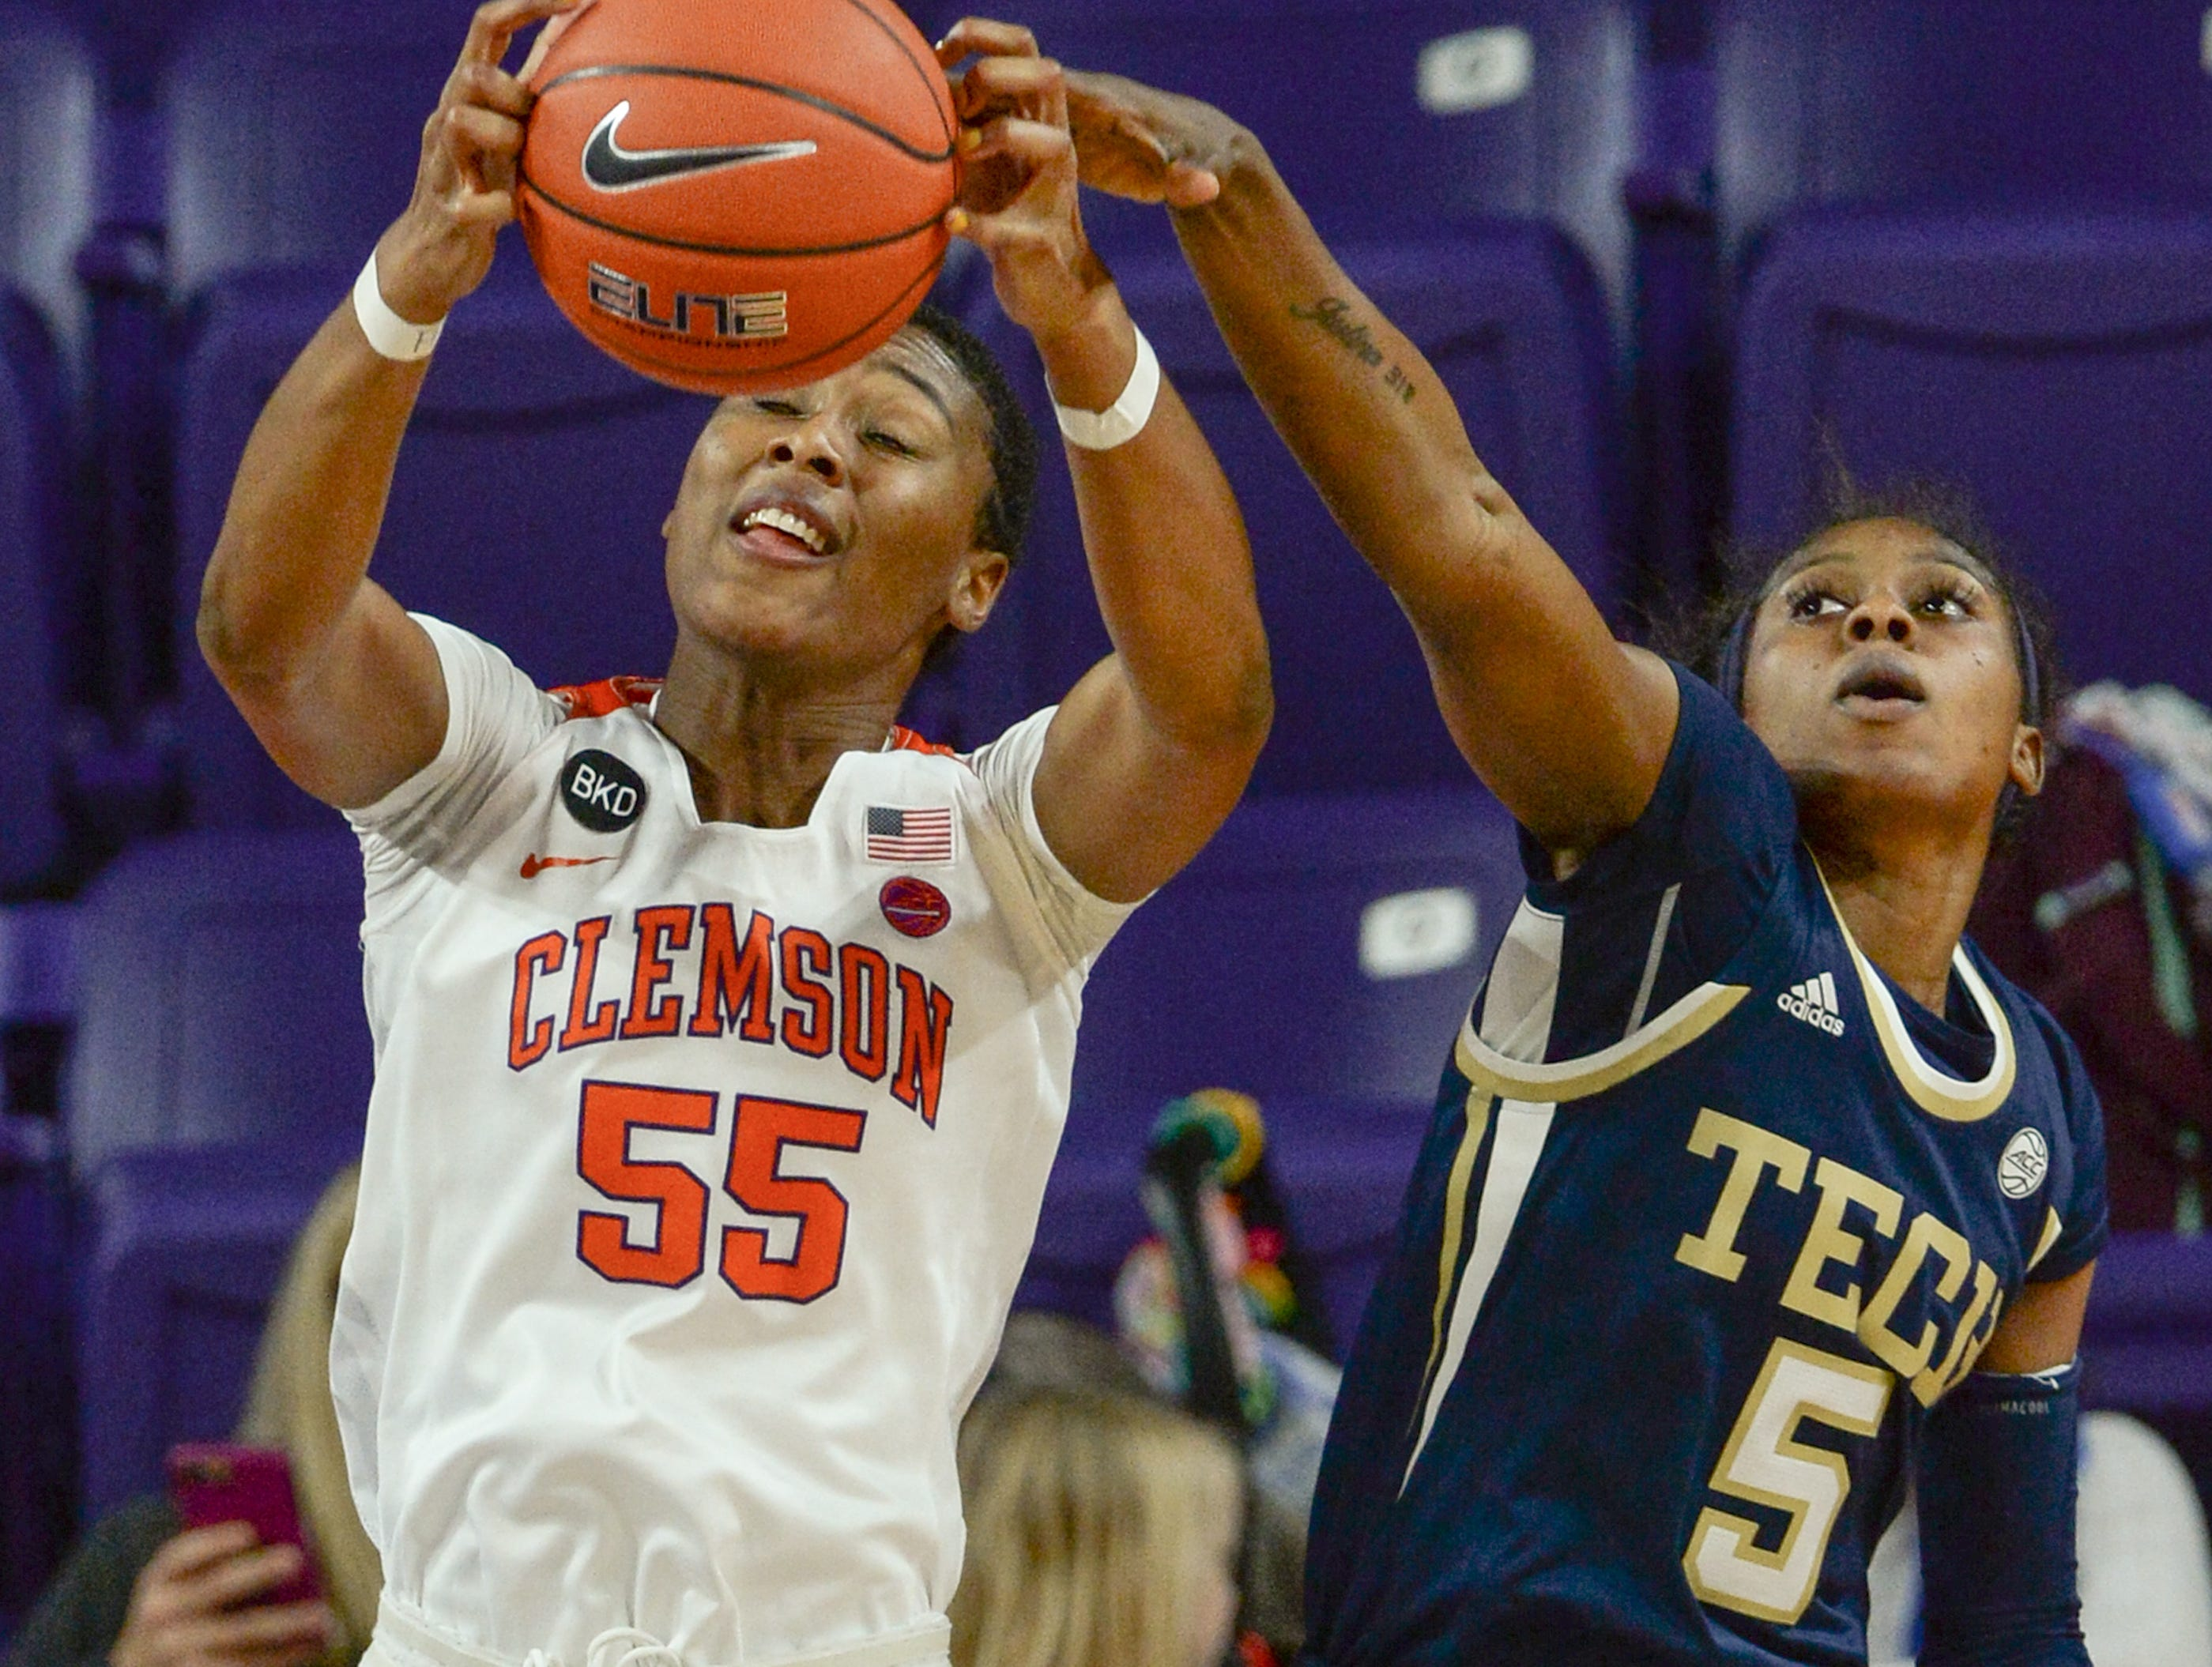 Clemson center Tylar Bennett(55) rebounds near Georgia Tech guard Liz Balogun(5) during the second quarter at Littlejohn Coliseum in Clemson Thursday, January 17, 2019.